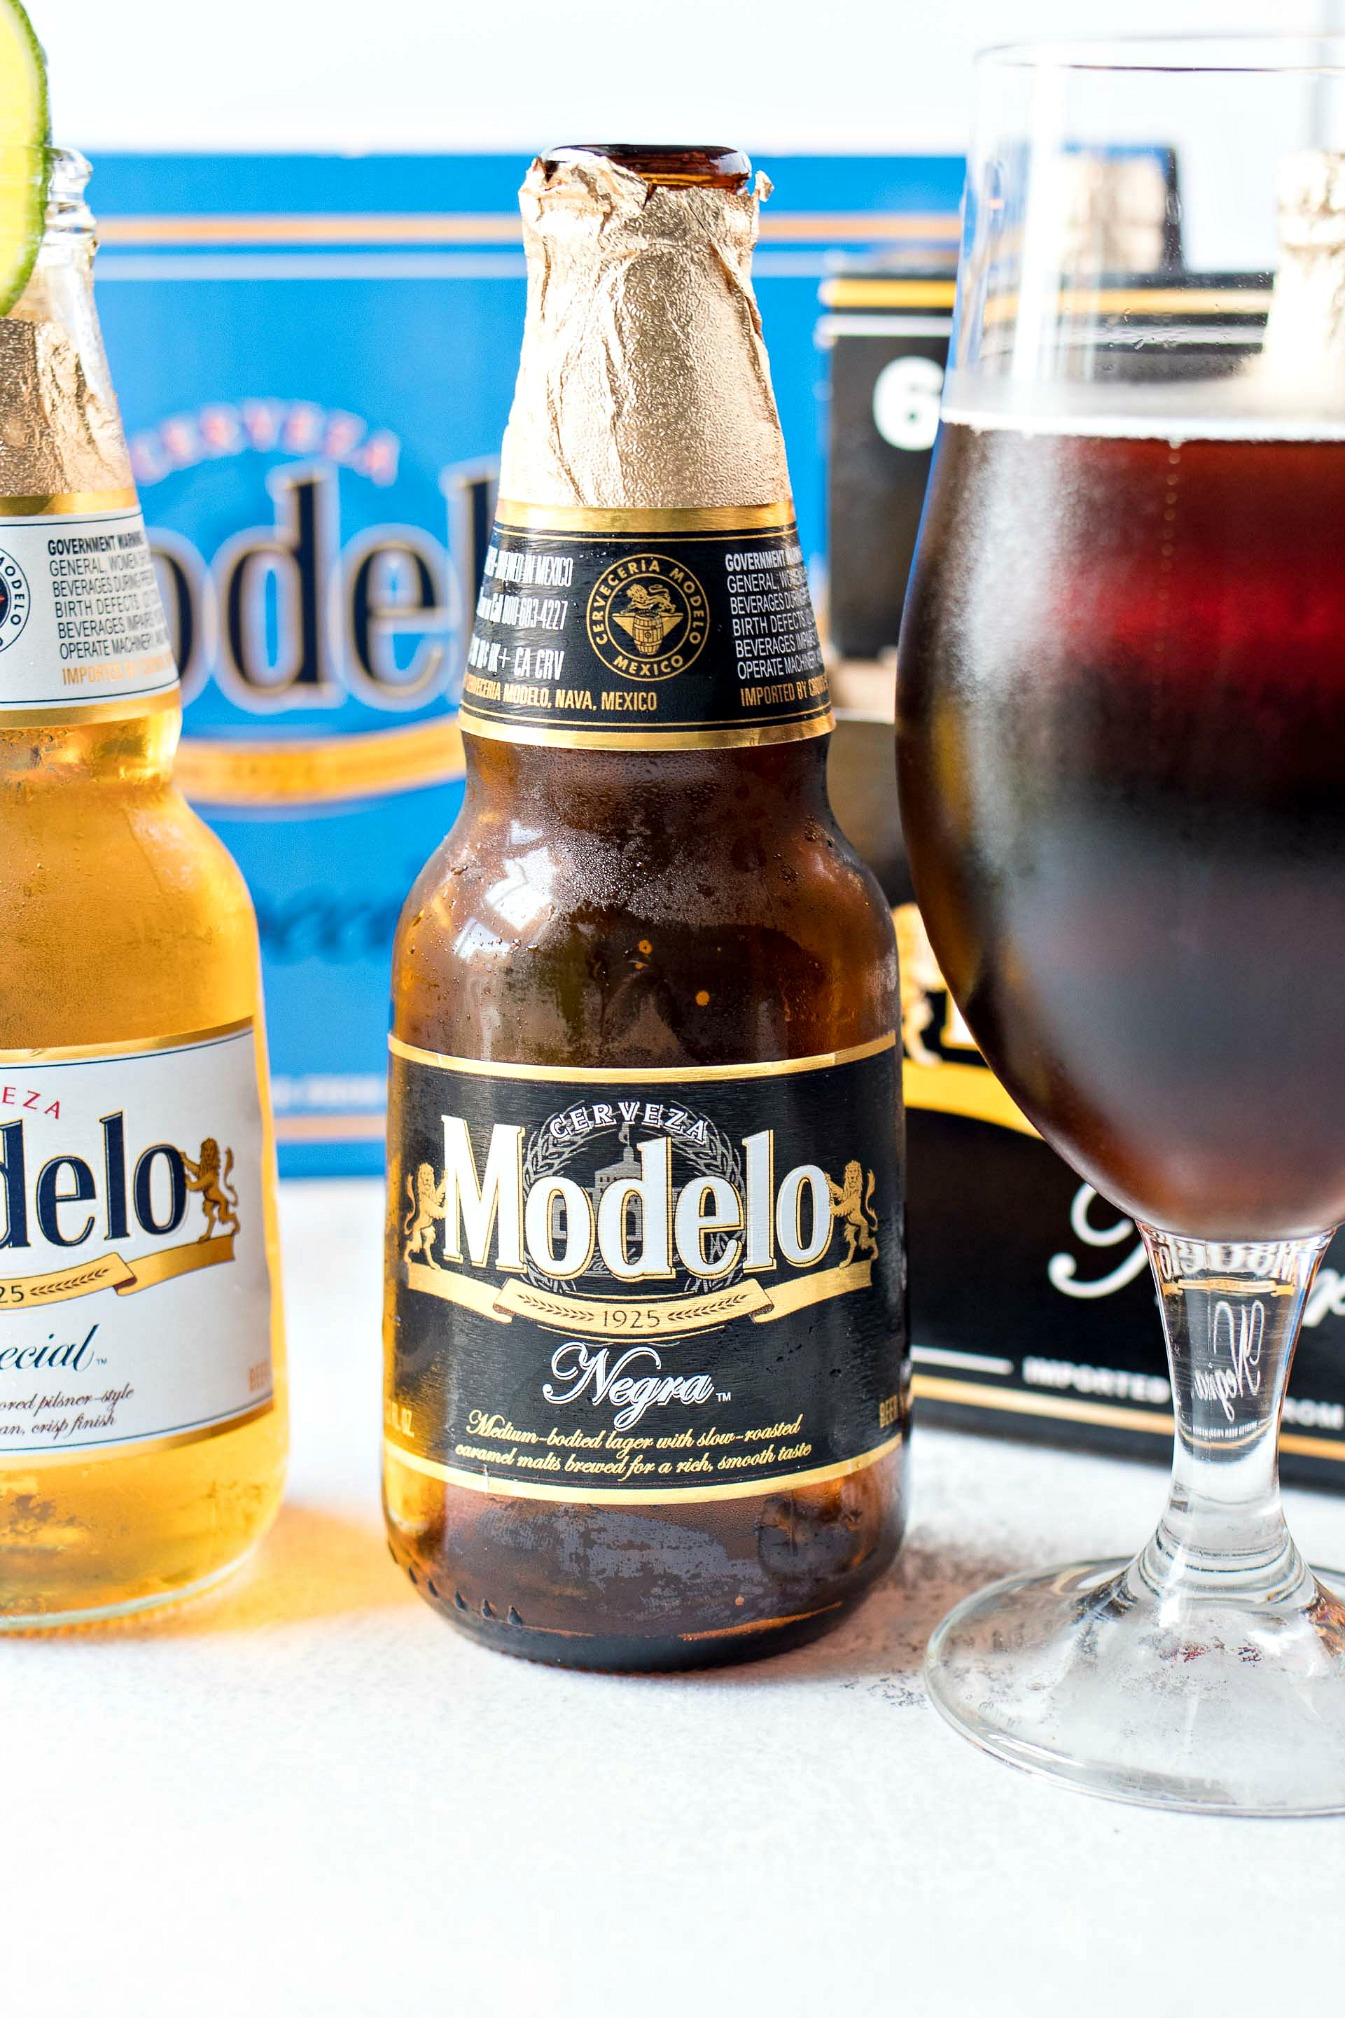 Bottle of Modelo Negro